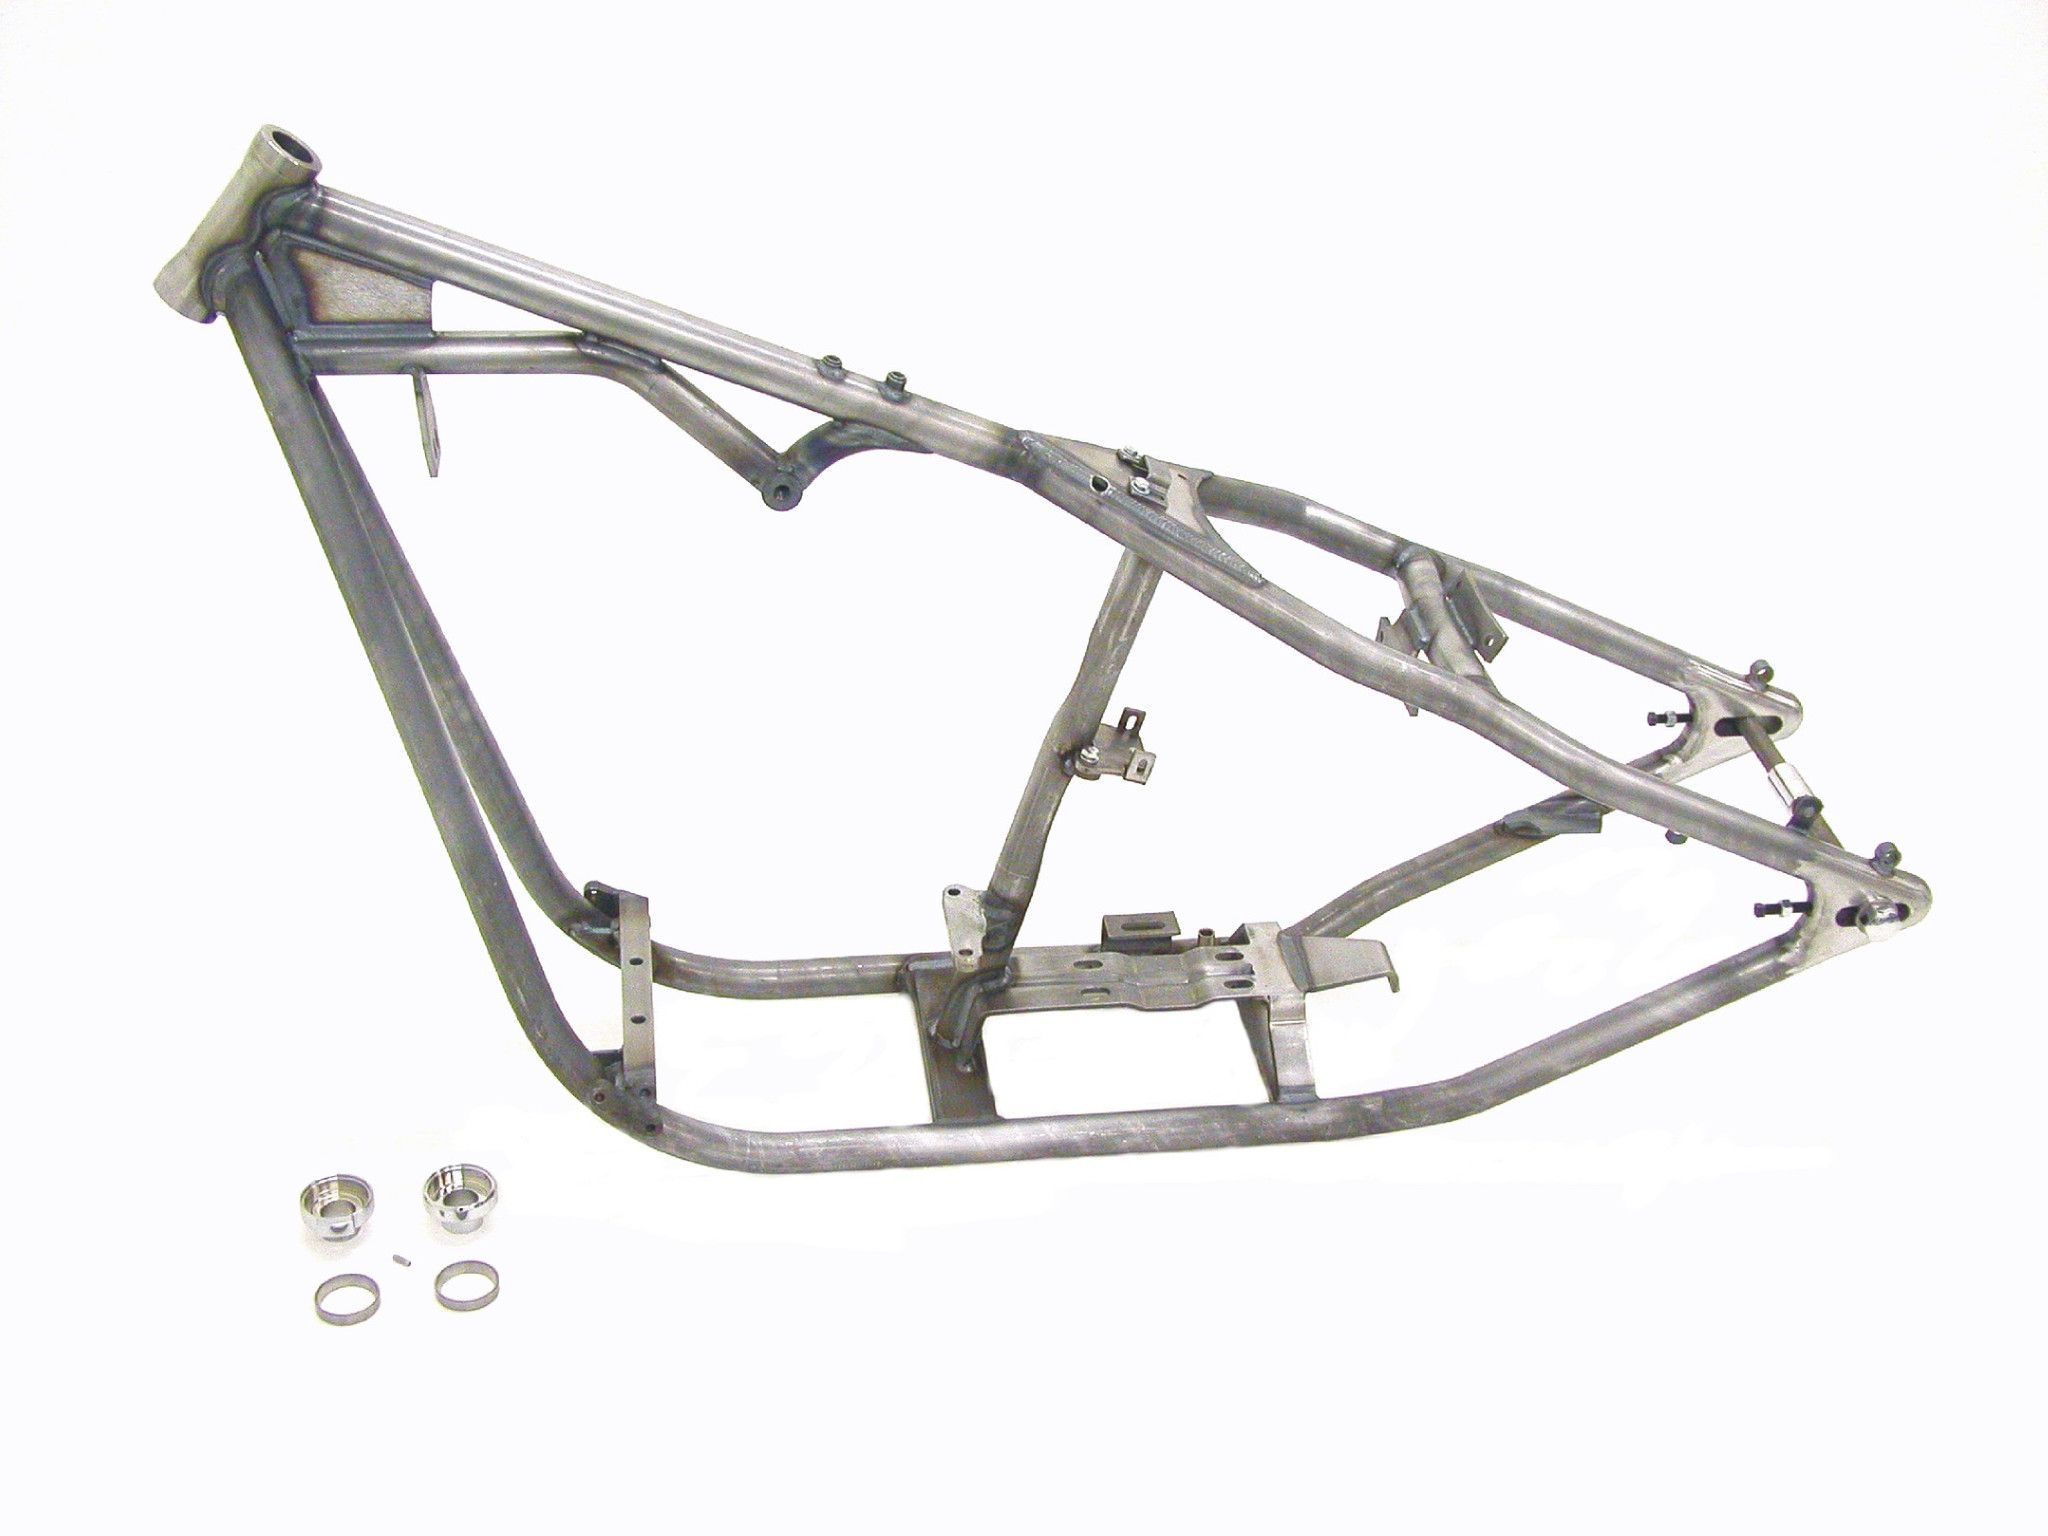 """Rigid frame for 180 width tires made from 1-3/8"""" tubing with 35 ..."""